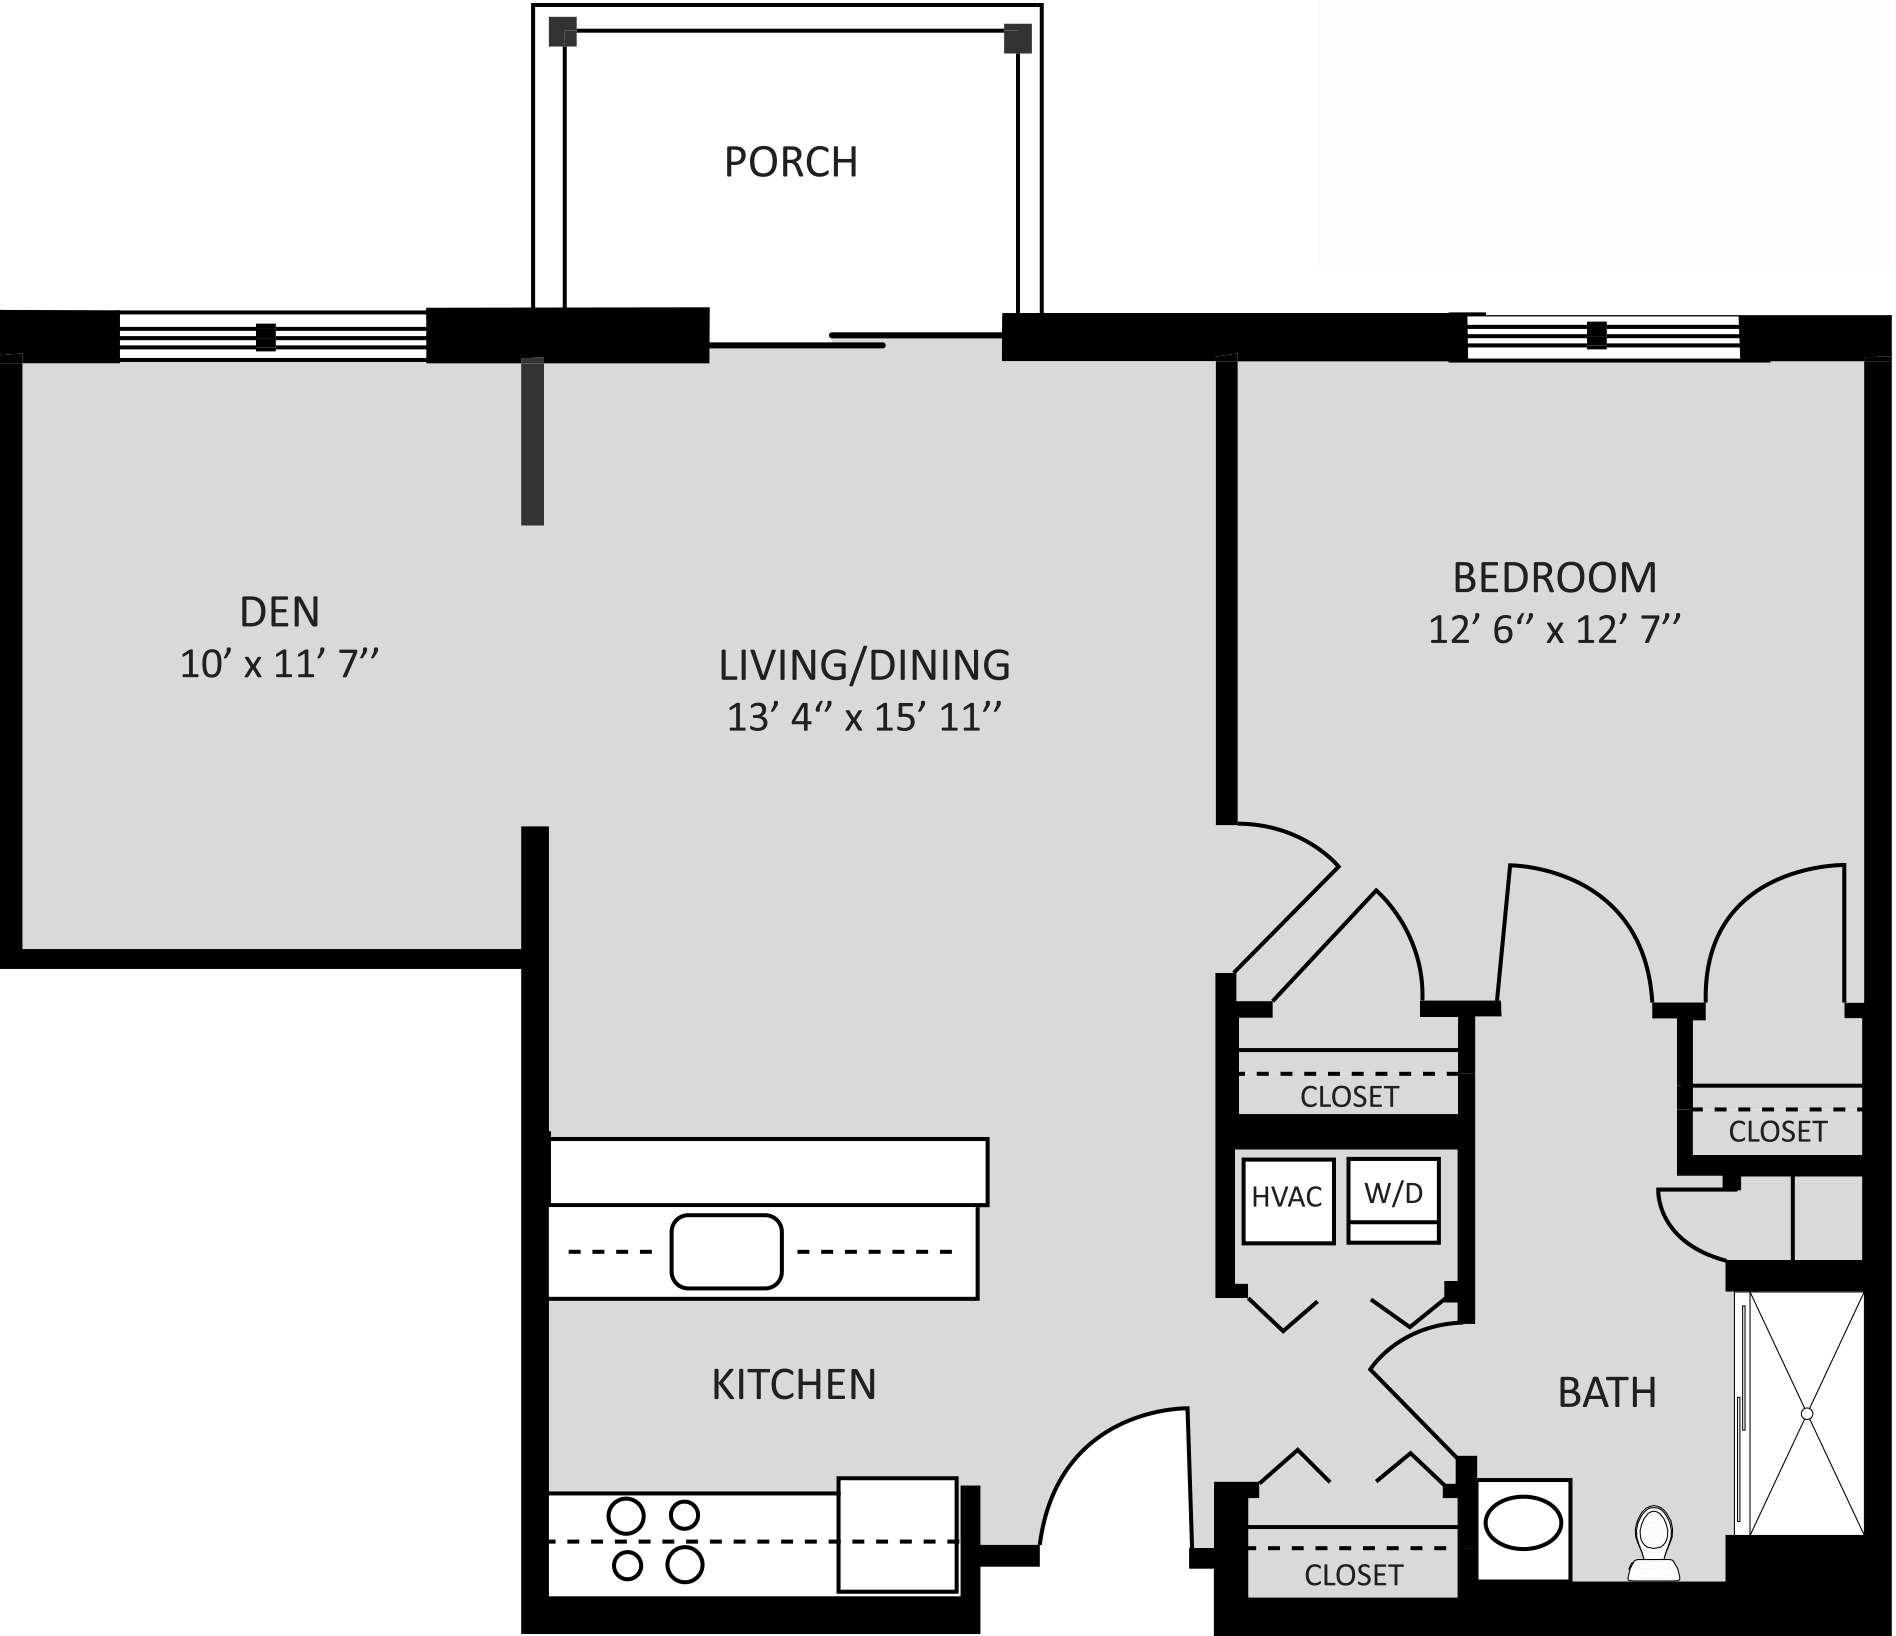 HP Tred Avon One Bedroom-Den 825 Sq Ft.png